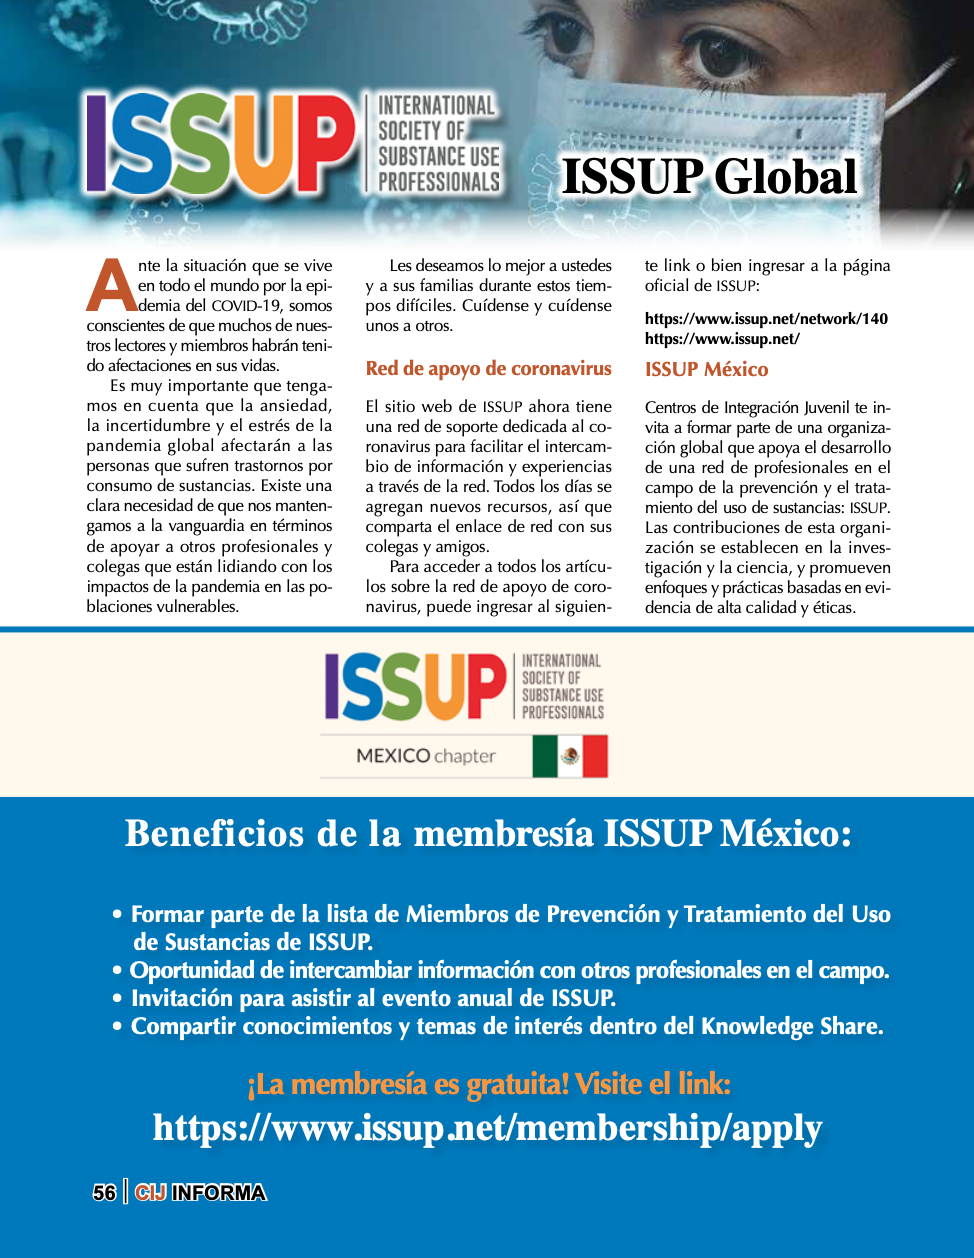 ISSUP Mexico in Revista 89